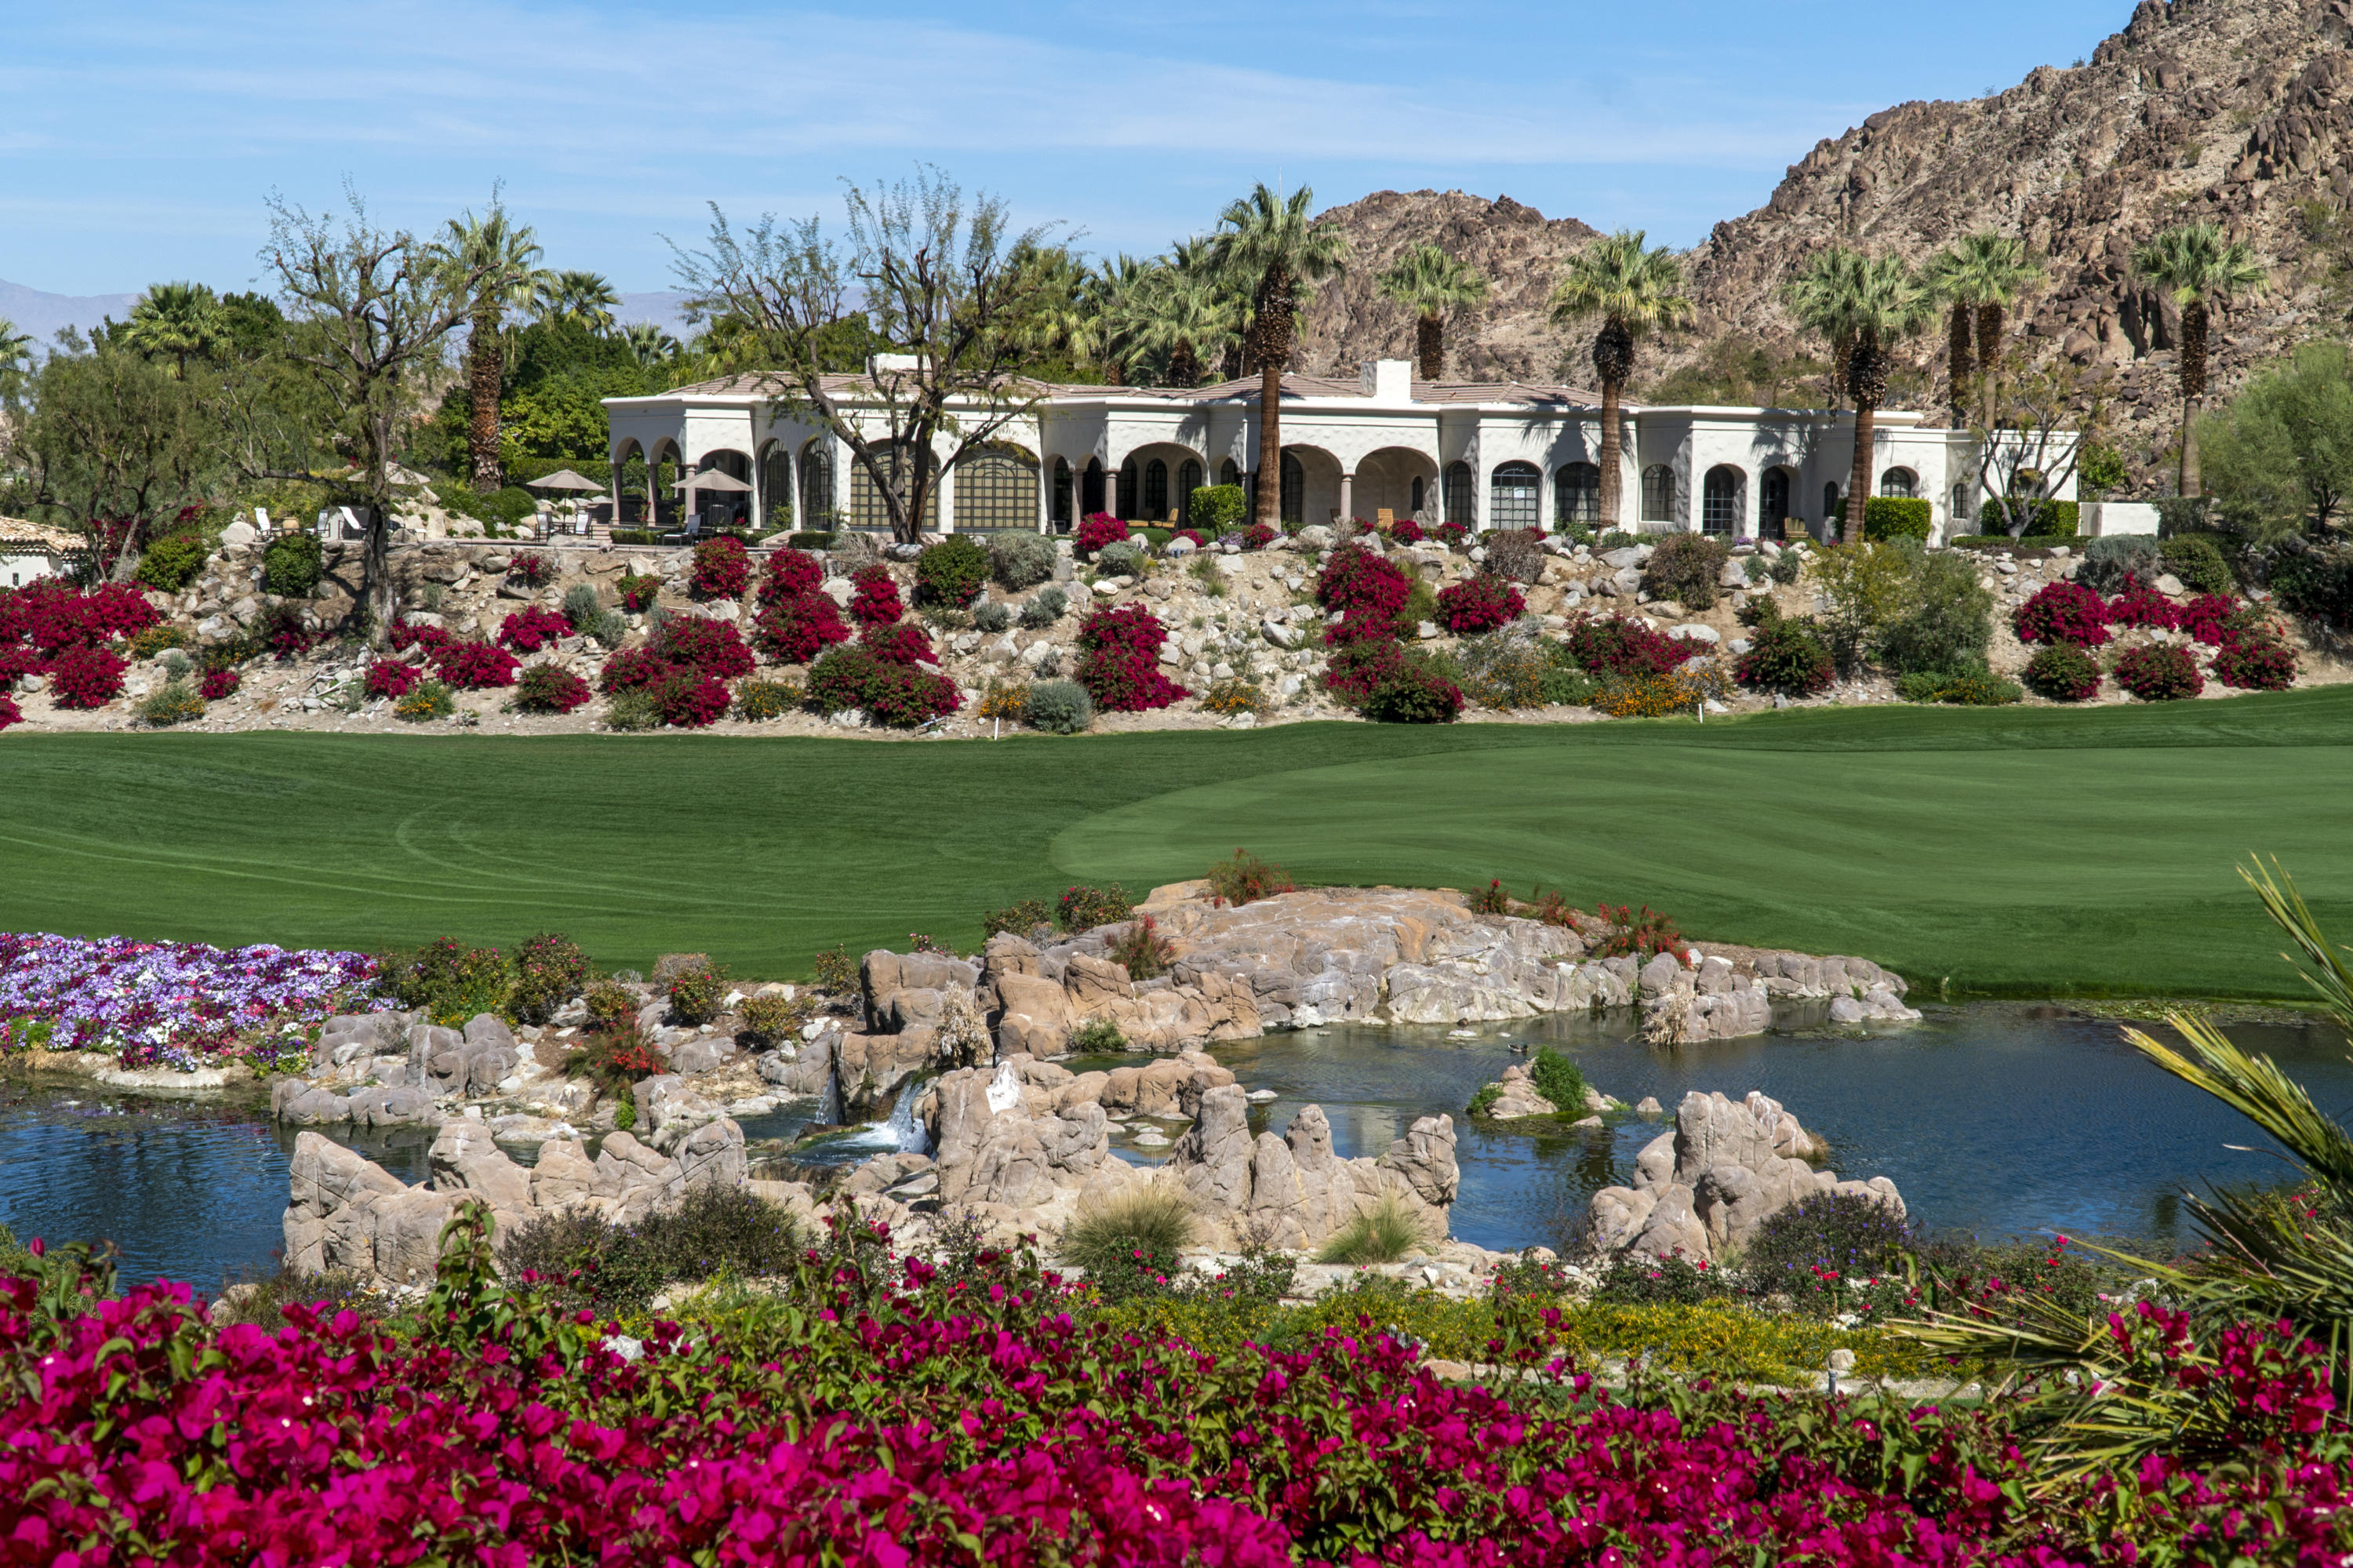 This home offers phenomenal elevated vistas of the Club's signature 16th Hole of the Mountain Course. An architectural masterpiece, by renowned architect Von M. White, with spacious interiors of approximately 9,461 SF. The home sits upon a private, elevated lot of nearly 23,958 SF overlooking multiple picturesque fairways featuring manicured bunkers, curving sand traps and meandering waterways with a rugged mountain backdrop. Located on the sunny side of the Cove, its location offers both poolside entertaining and the coveted sunset experience. Offered Furnished per Inventory.